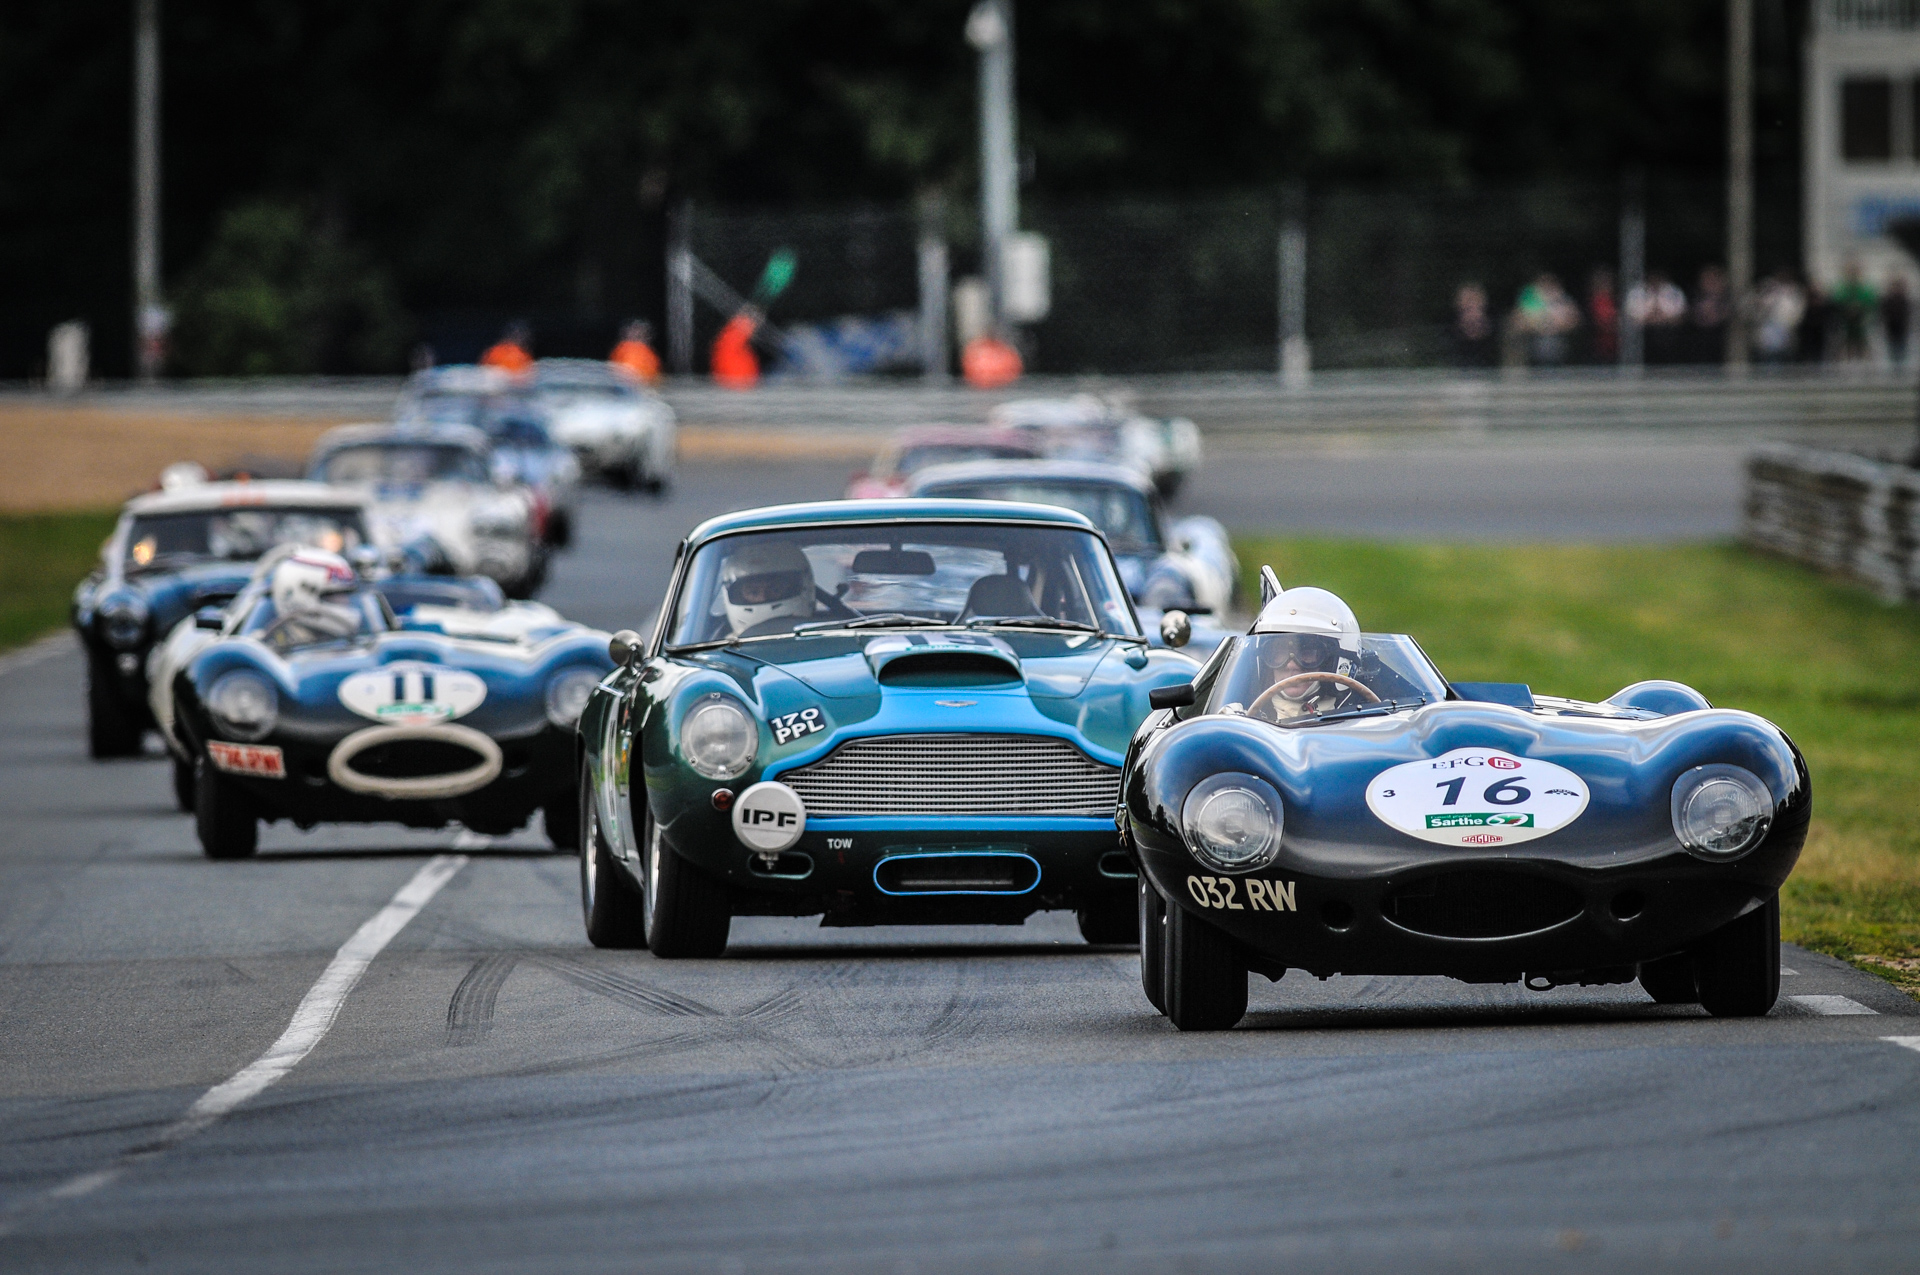 2016 Le Mans Classic Premier Financial Services